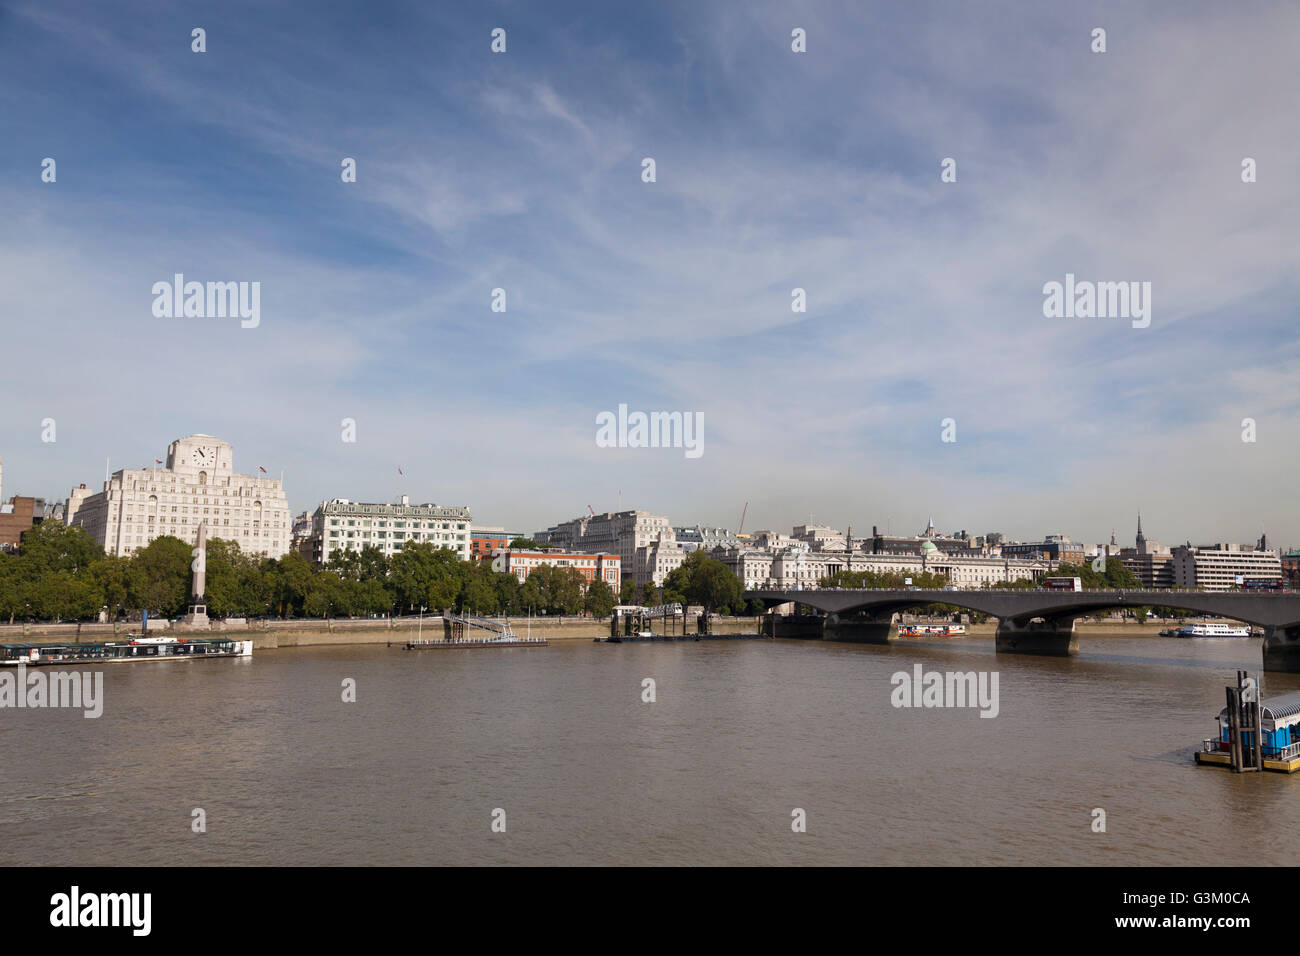 Shell Mex House and Waterloo Bridge panorama over the Thames, London, England, United Kingdom, Europe Stock Photo